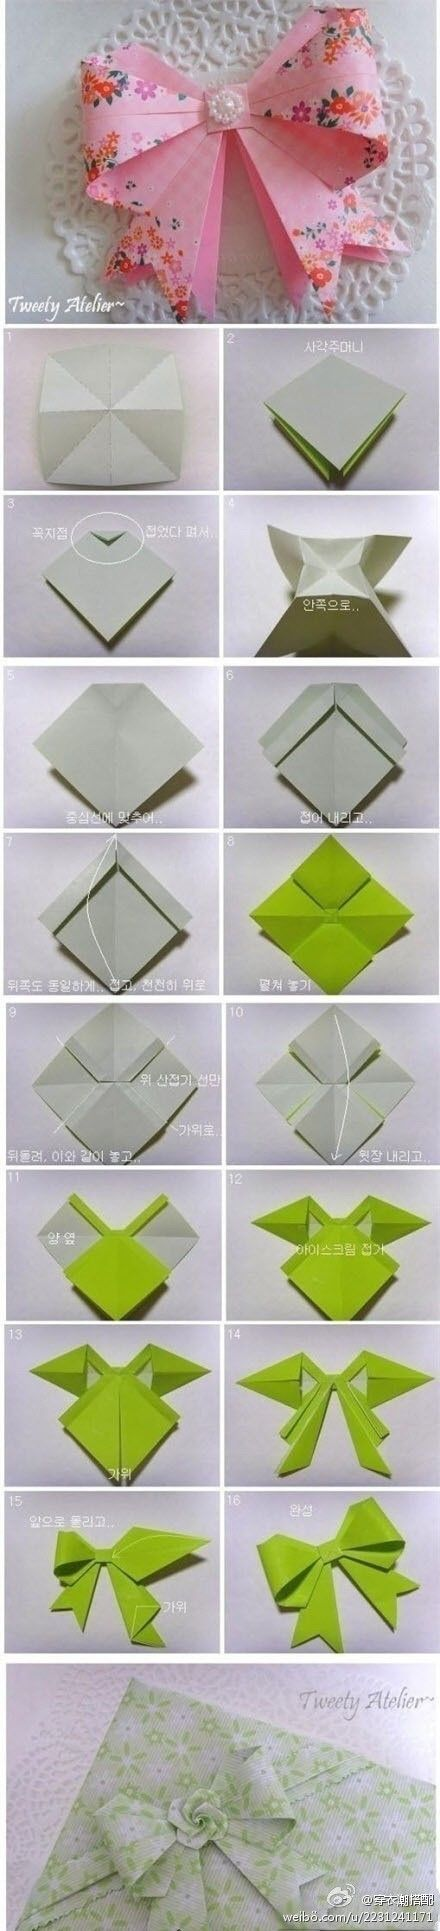 Origami Bow, good idea for the Christmas wrapping!!!